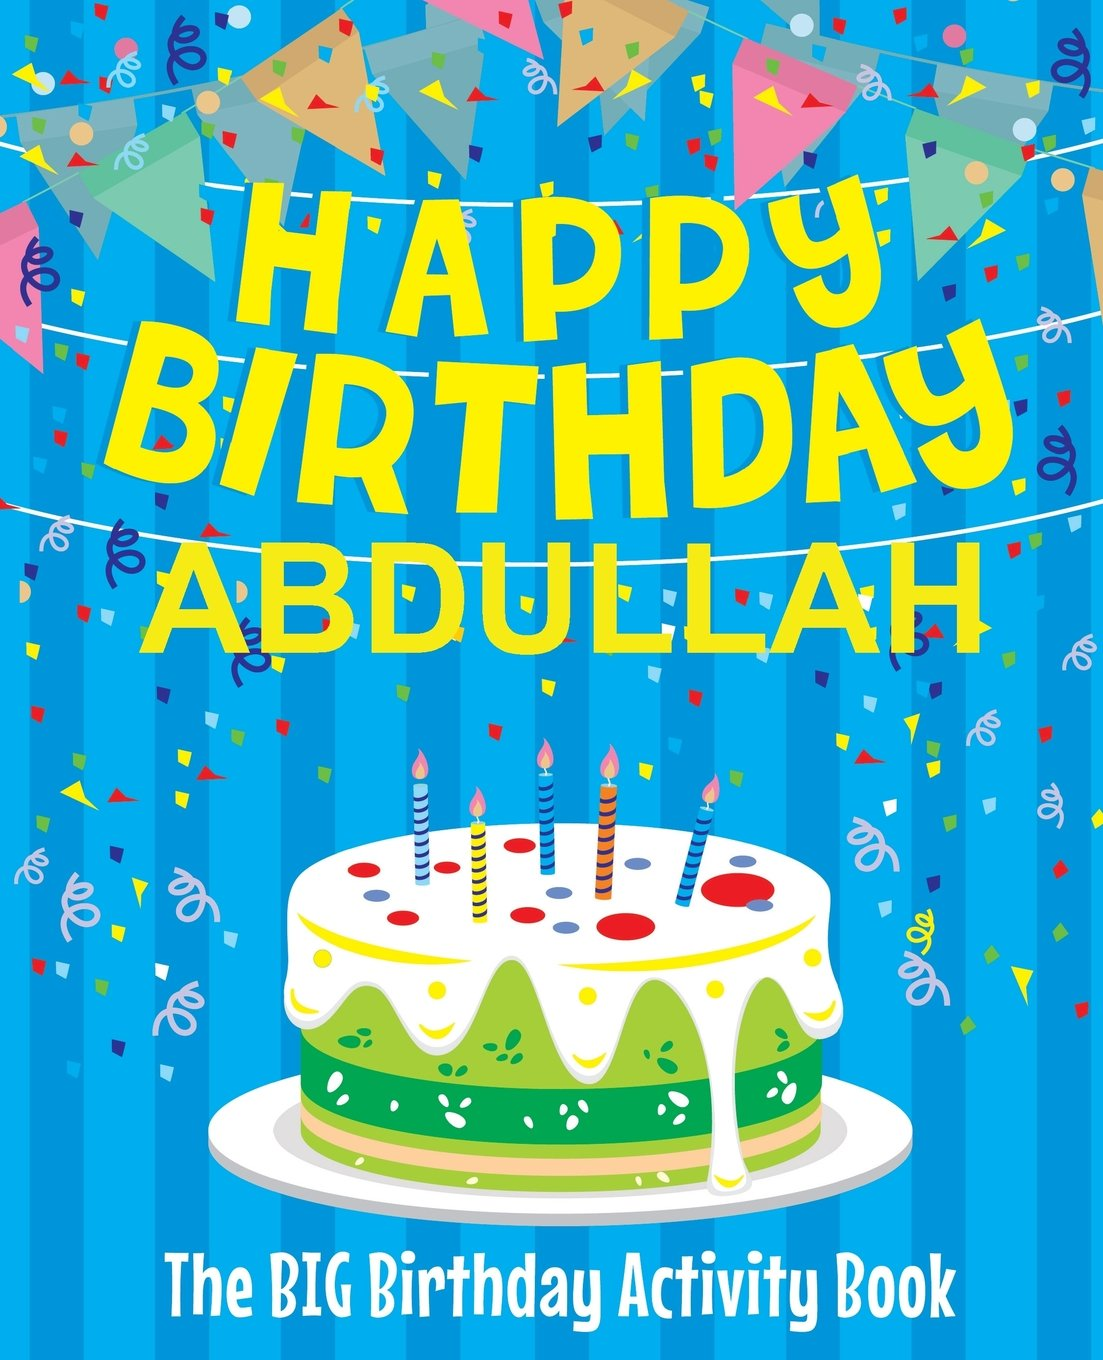 Happy Birthday Abdullah The Big Birthday Activity Book Personalized Children S Activity Book Amazon Com Br